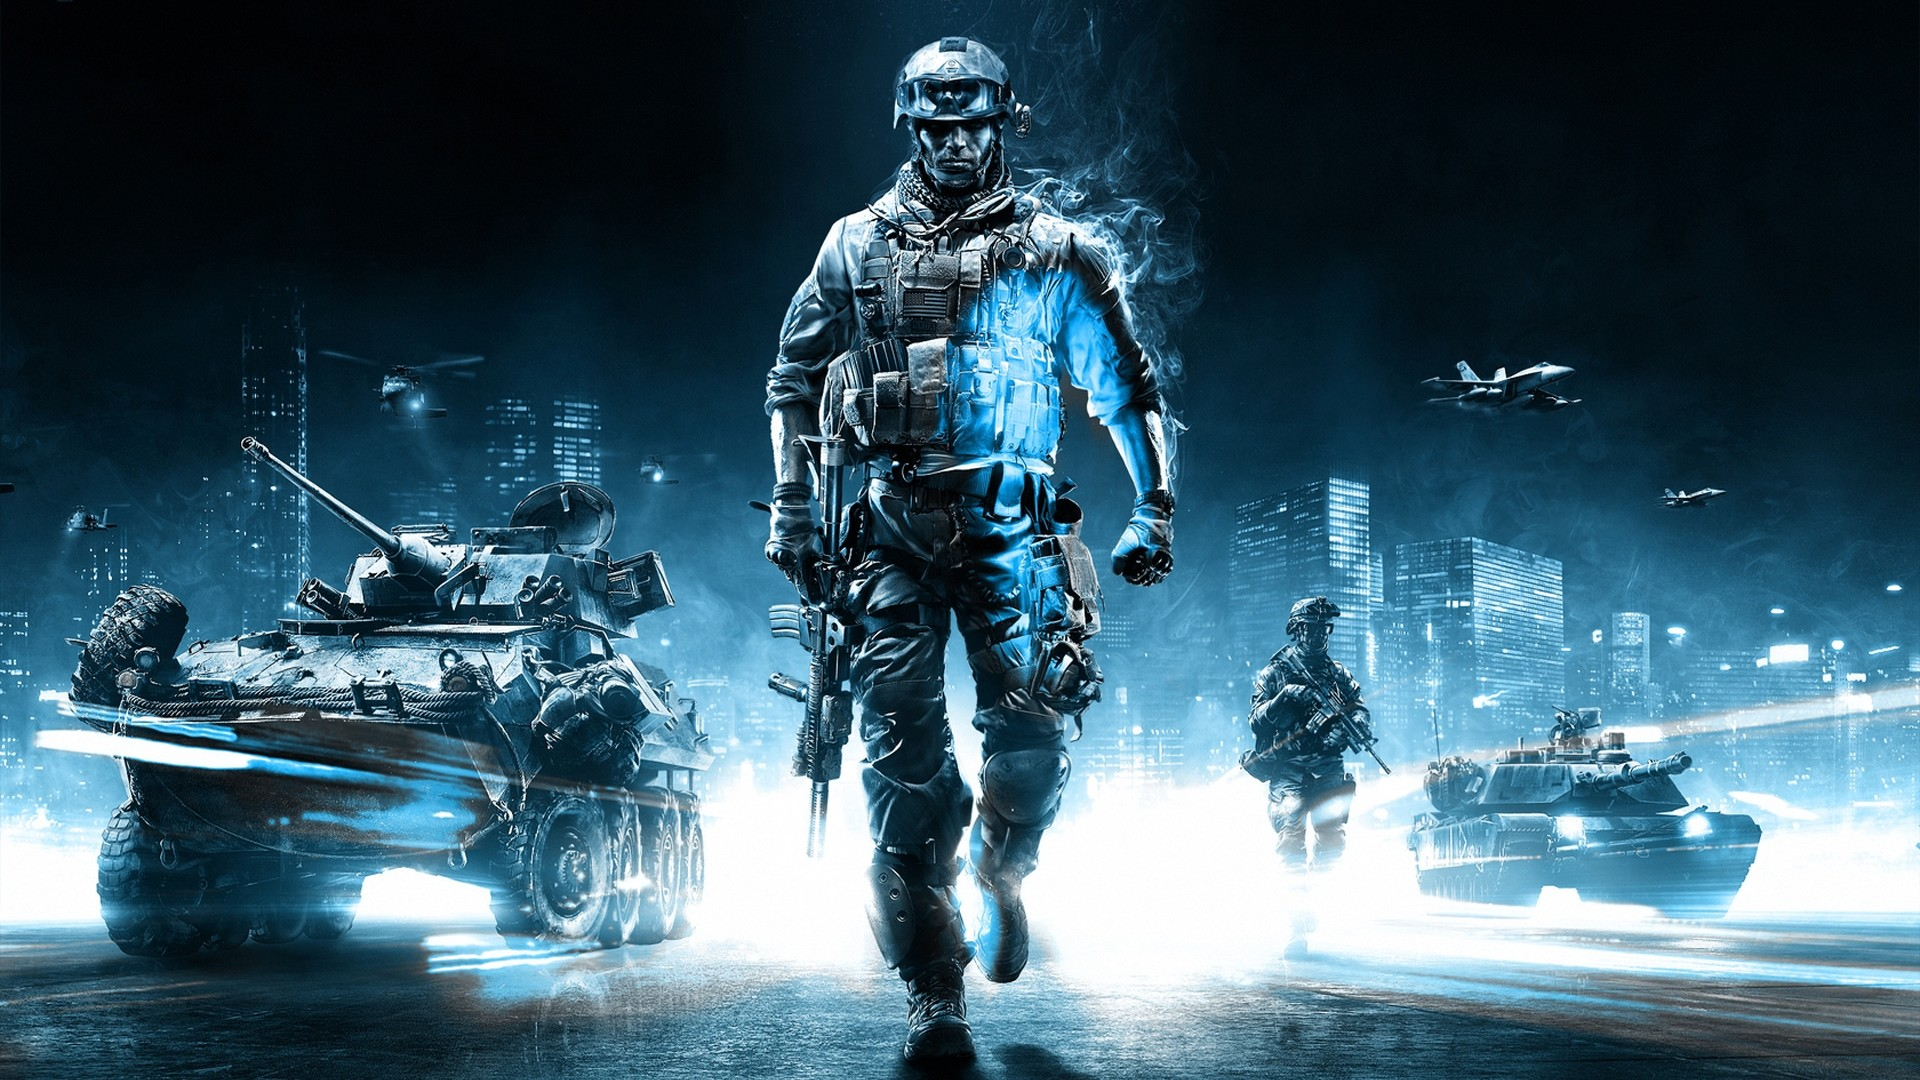 Battlefield 4 Awesome Wallpapers is one from many Best HD Wallpapers on  Games category in Amazing Wallpaperz.